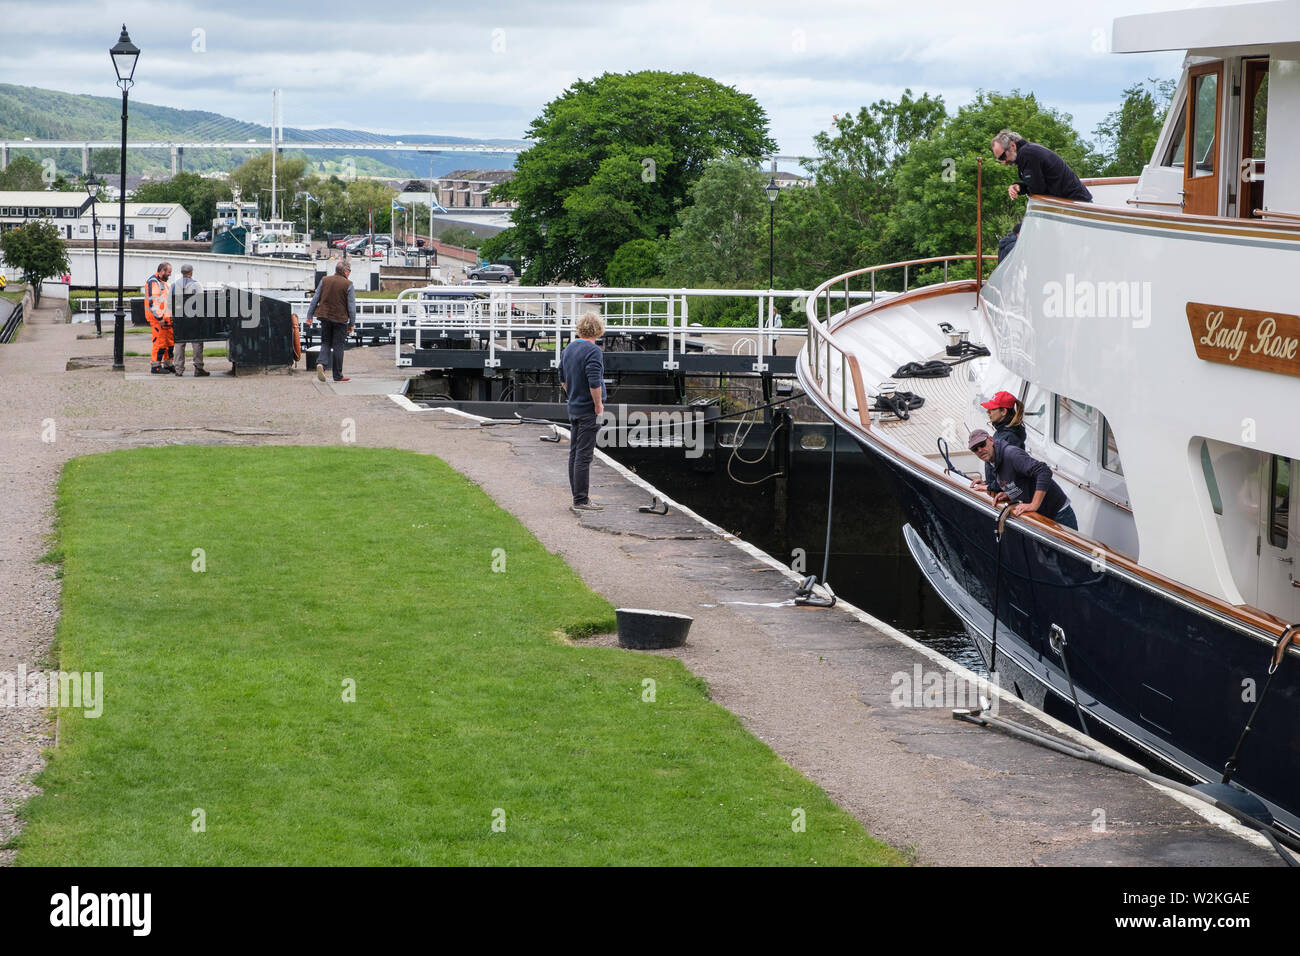 'Lady Rose' passing through Muirtown Locks, Caledonian Canal, Inverness, with Kessock Bridge in distance - Stock Image